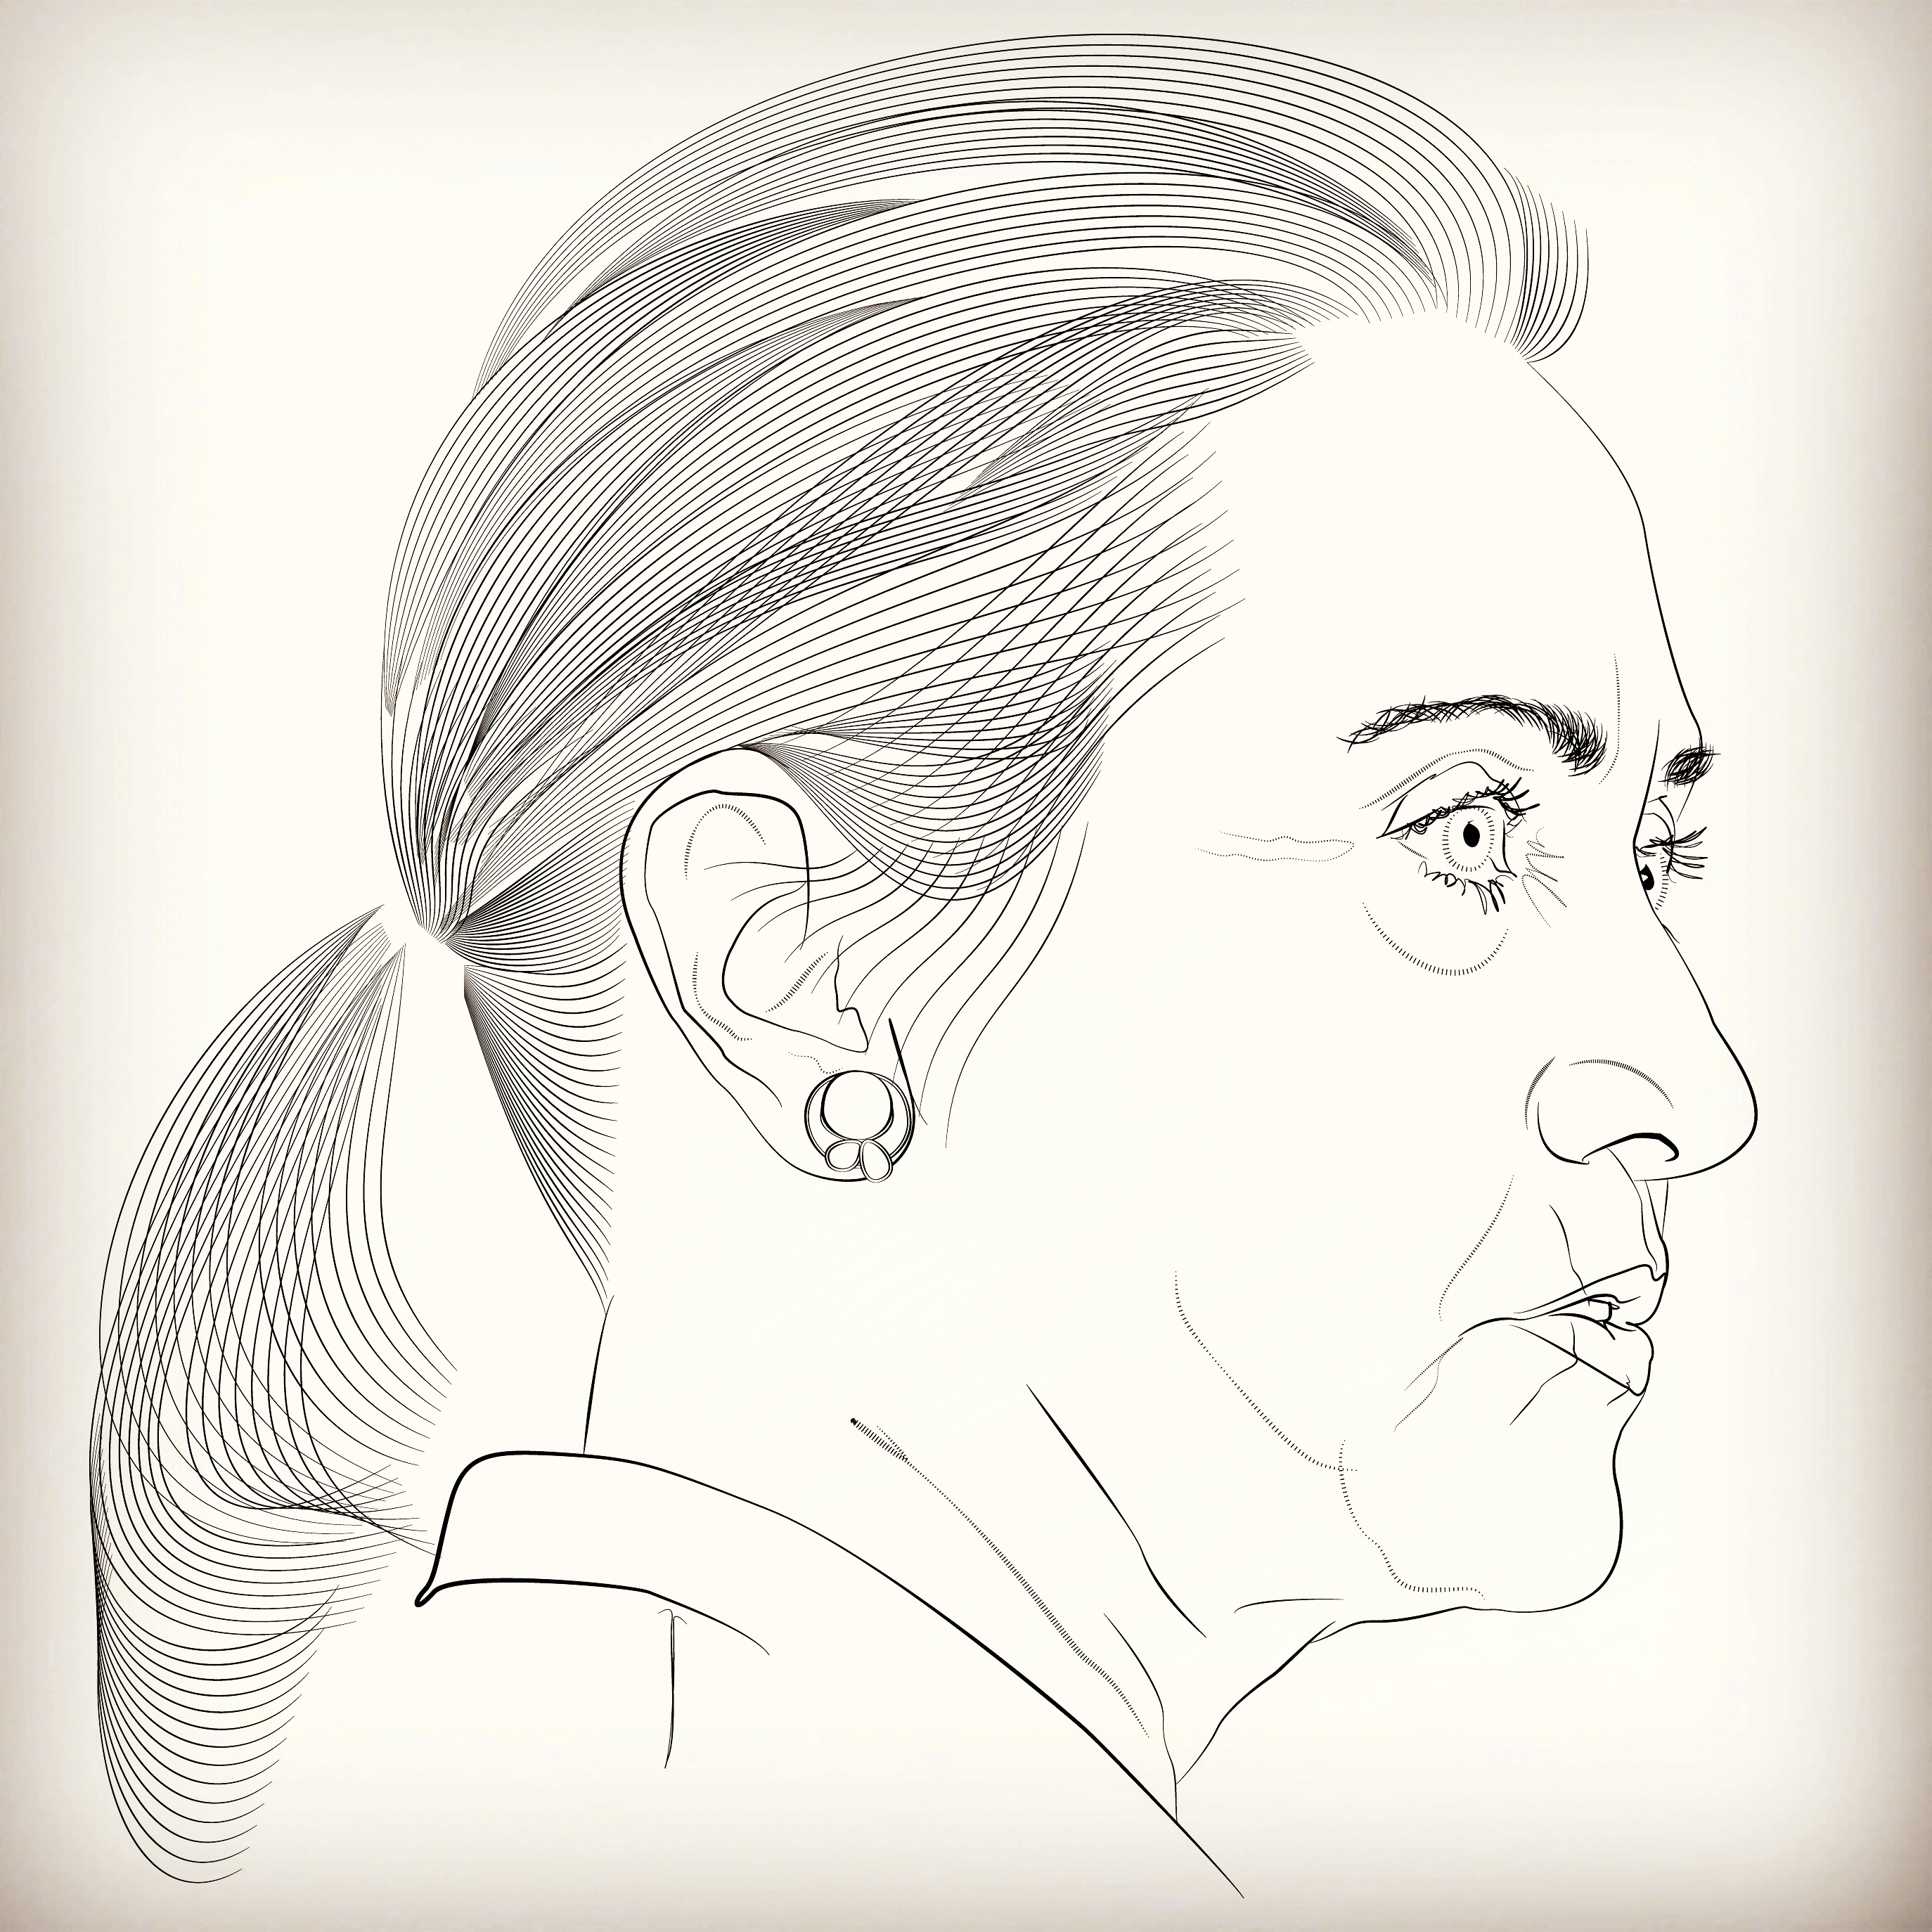 Presidential Candidate Series - Hillary Clinton